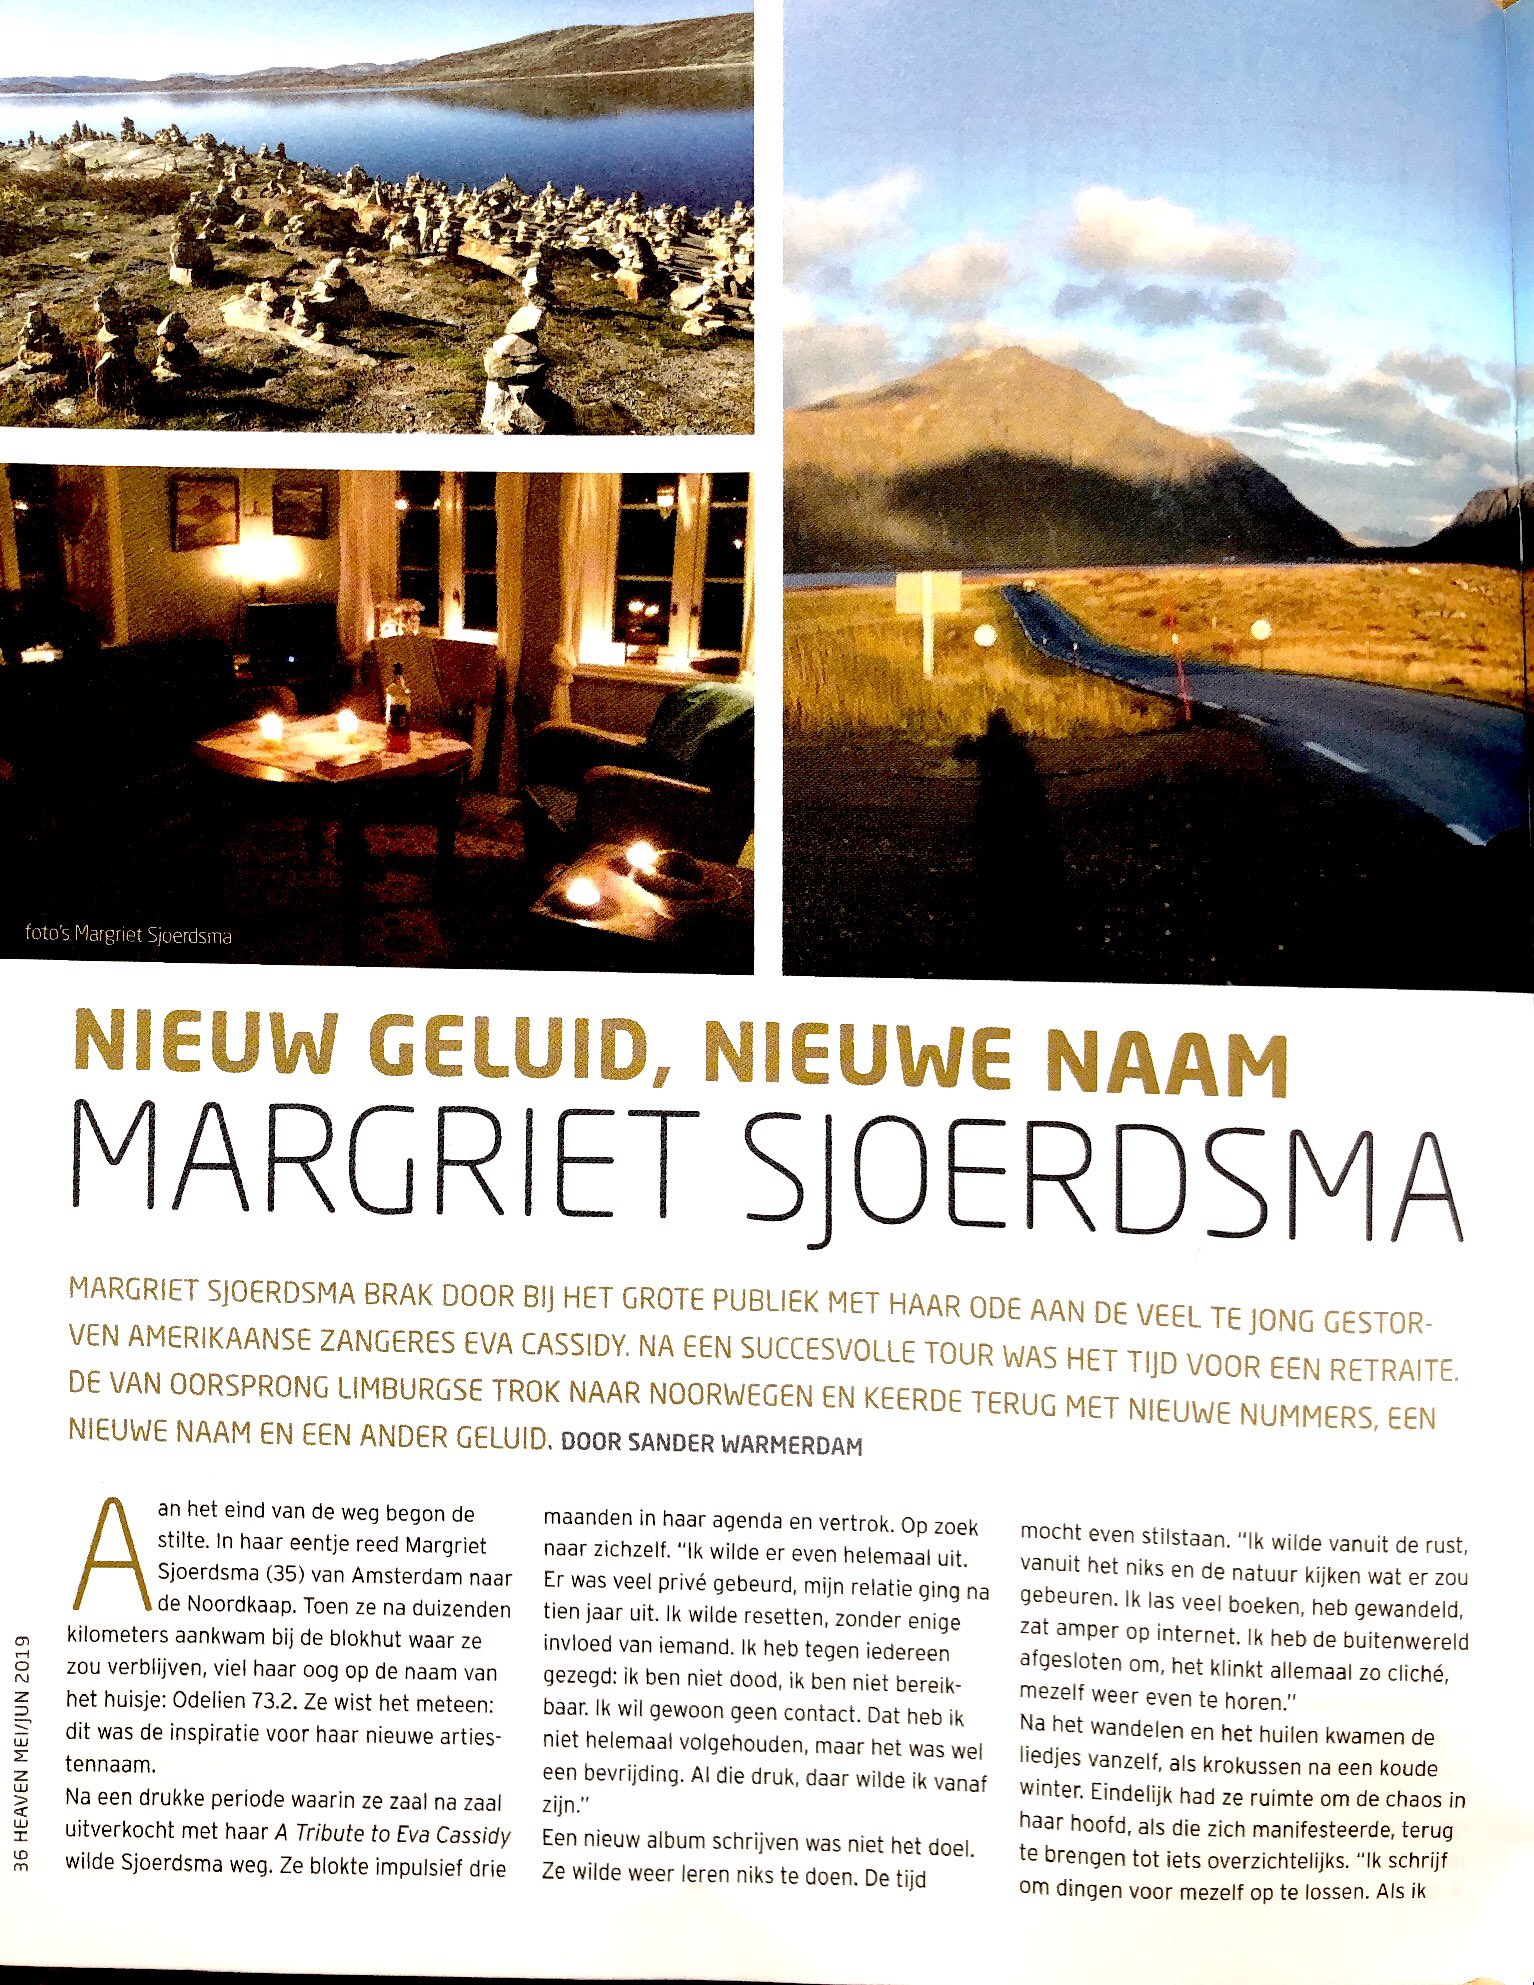 INTERVIEW IN HEAVEN MAGAZINE - About 3 months in Norway,the benefits of solitude and silence!